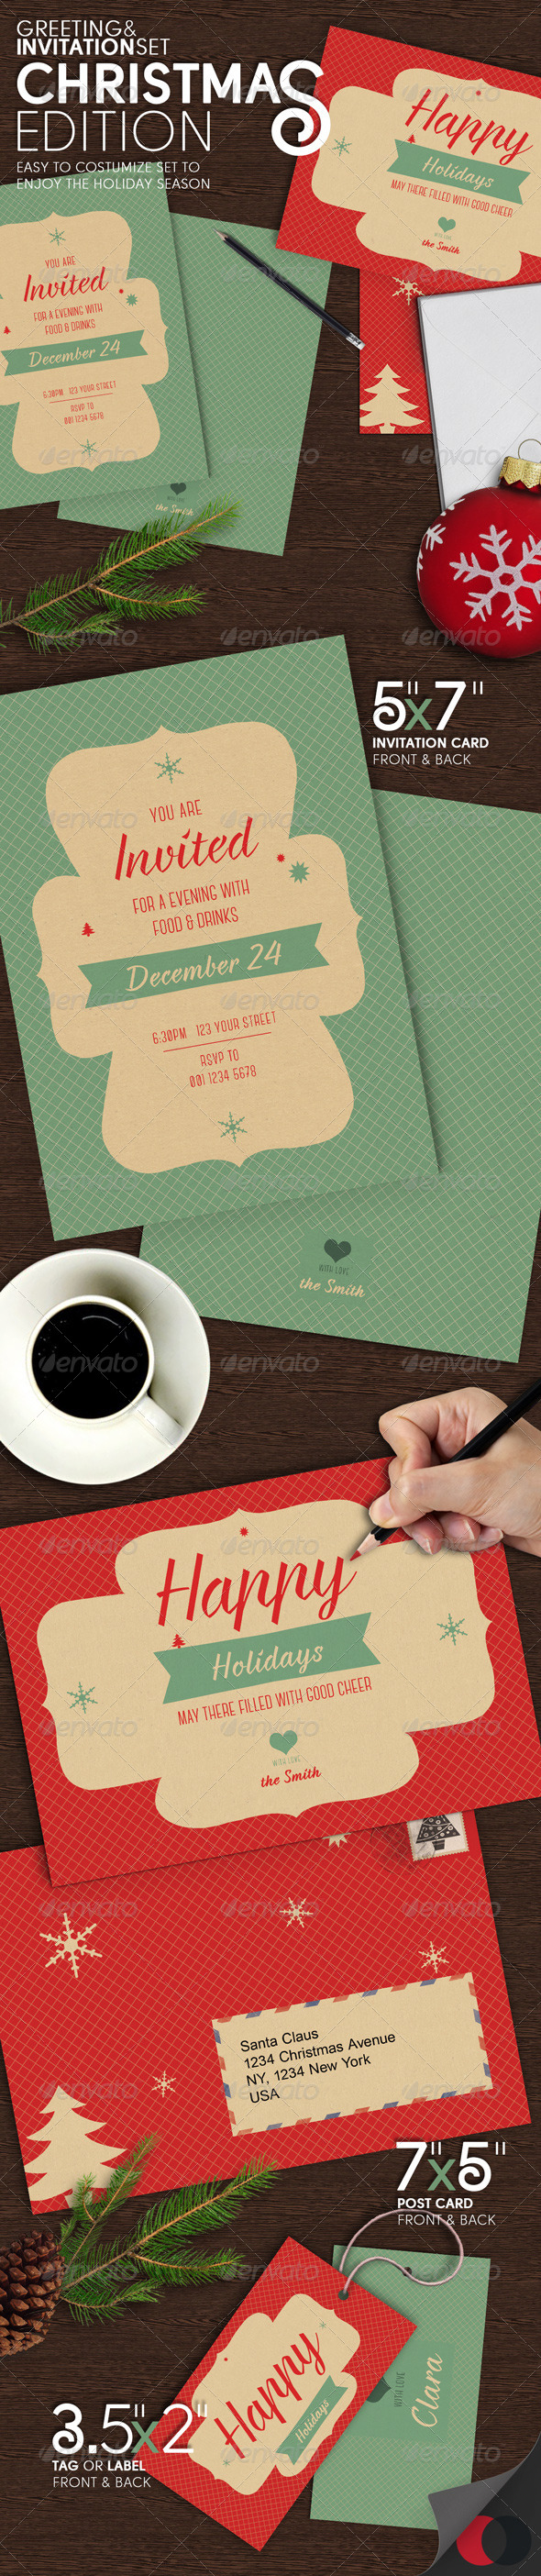 GraphicRiver Greeting & Invitation Set Christmas Edition 6346376